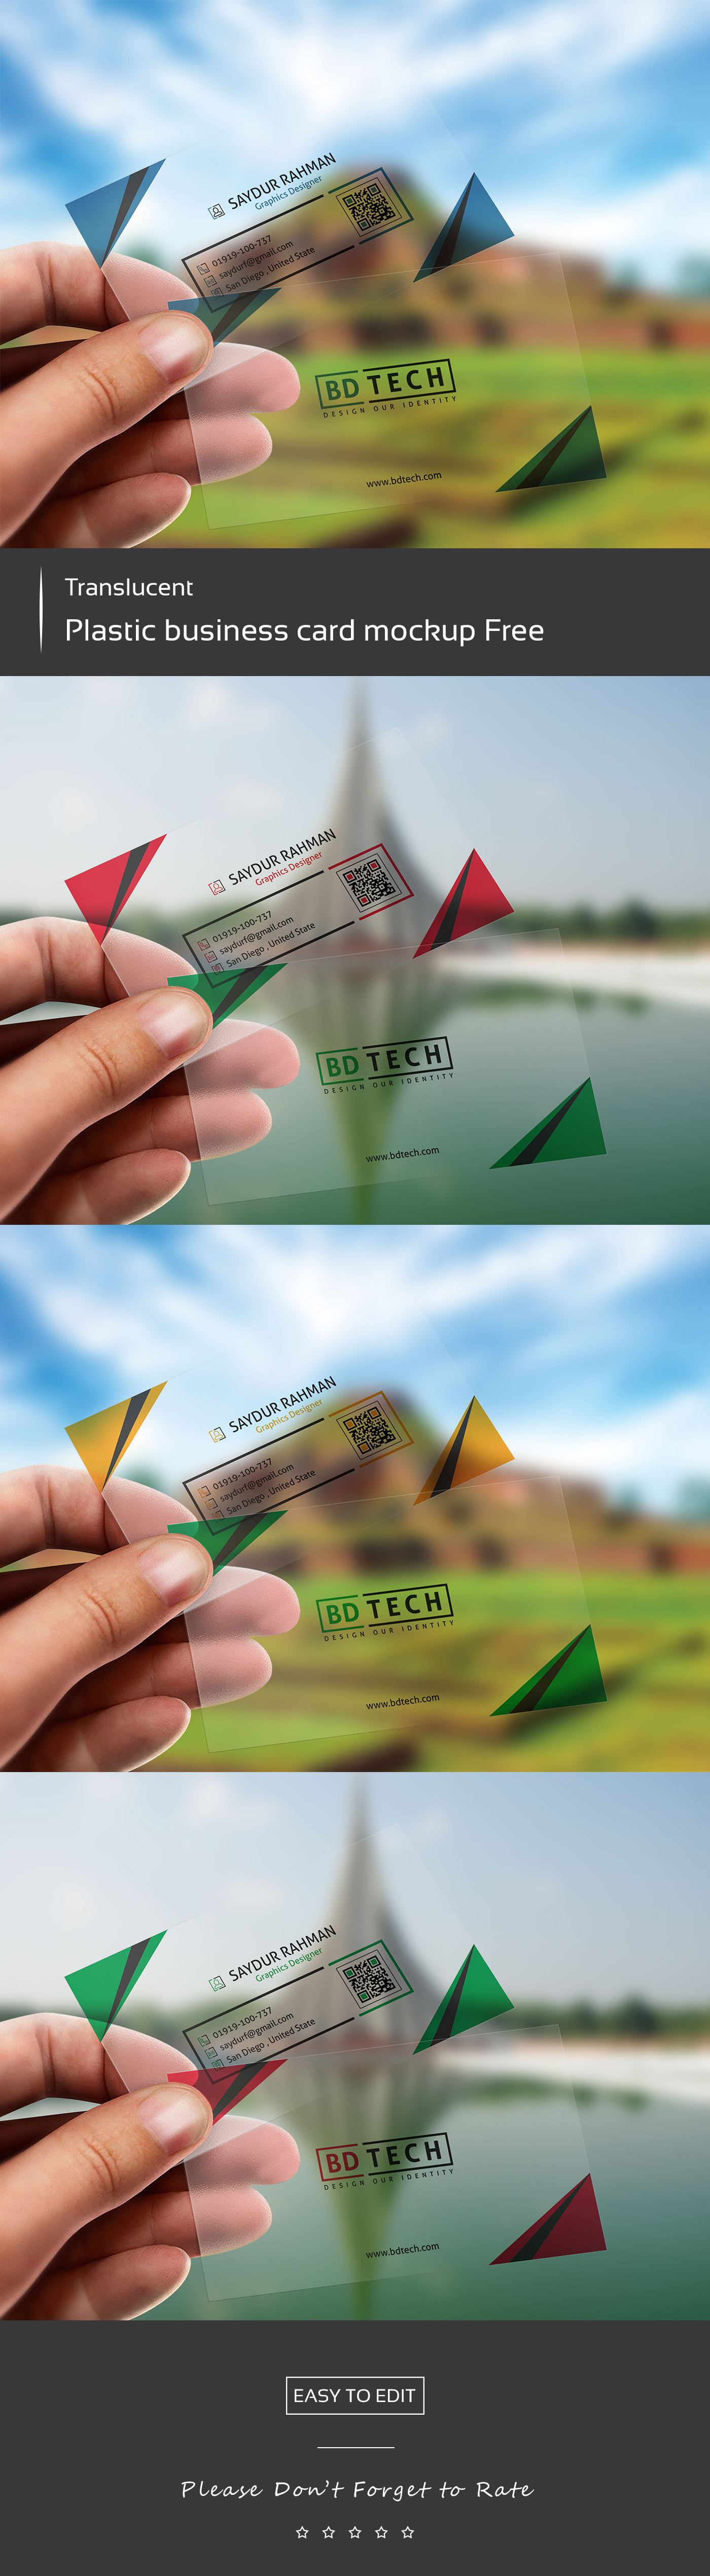 translucent plastic business card mockup free on behance